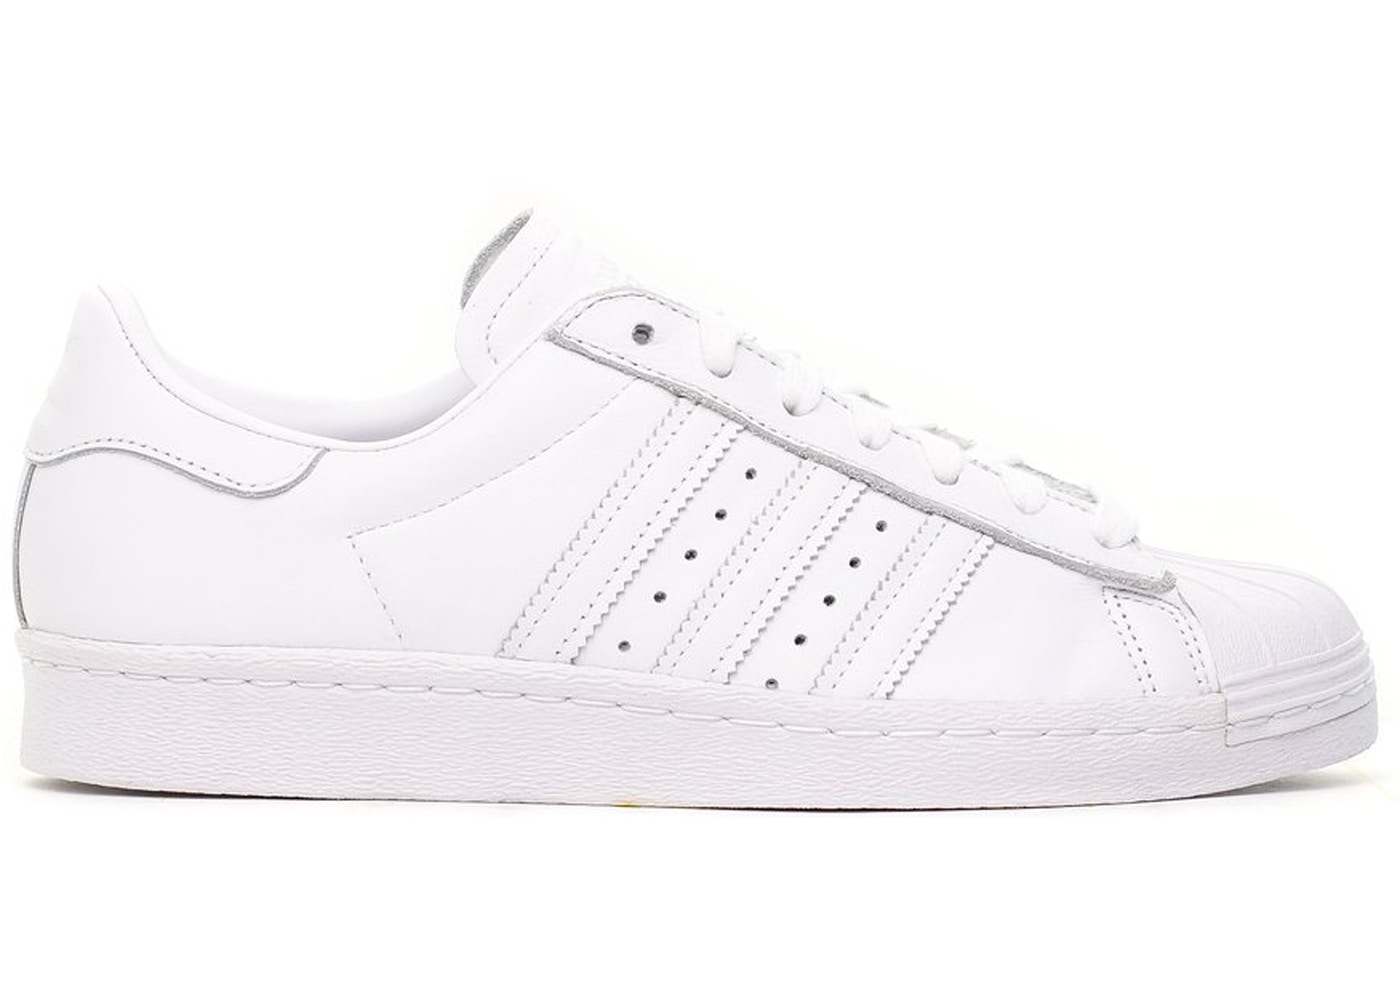 finest selection 5c00c 47a63 adidas Superstar 80s Valentine's Day 2018 (W) - CQ3009